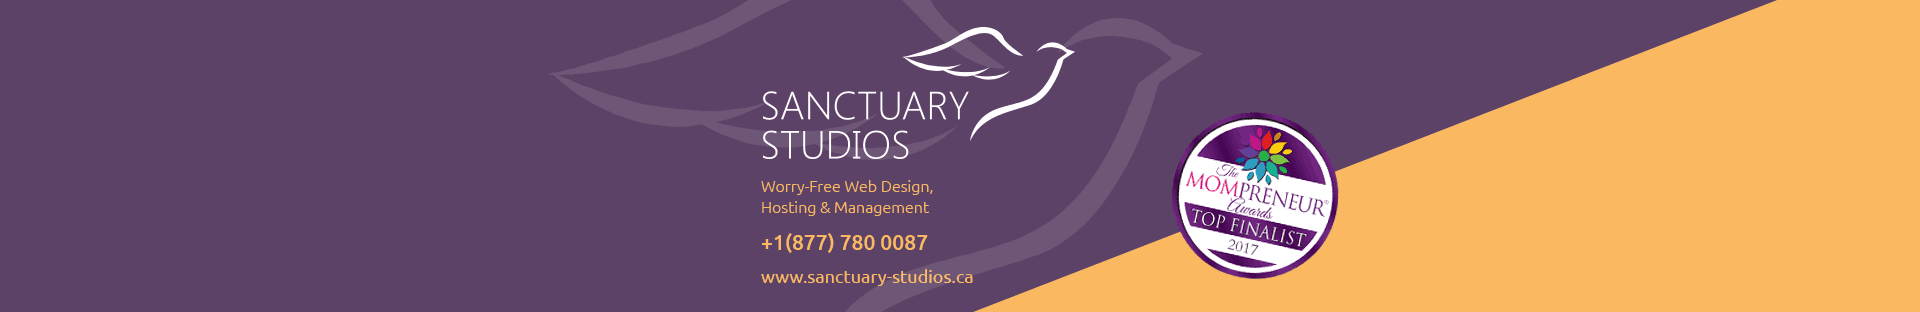 Worry-Free Web Design - Sanctuary Studios Inc., and Michelle Emson, Finalists for the 2017 Mompreneurs® Momentum Award